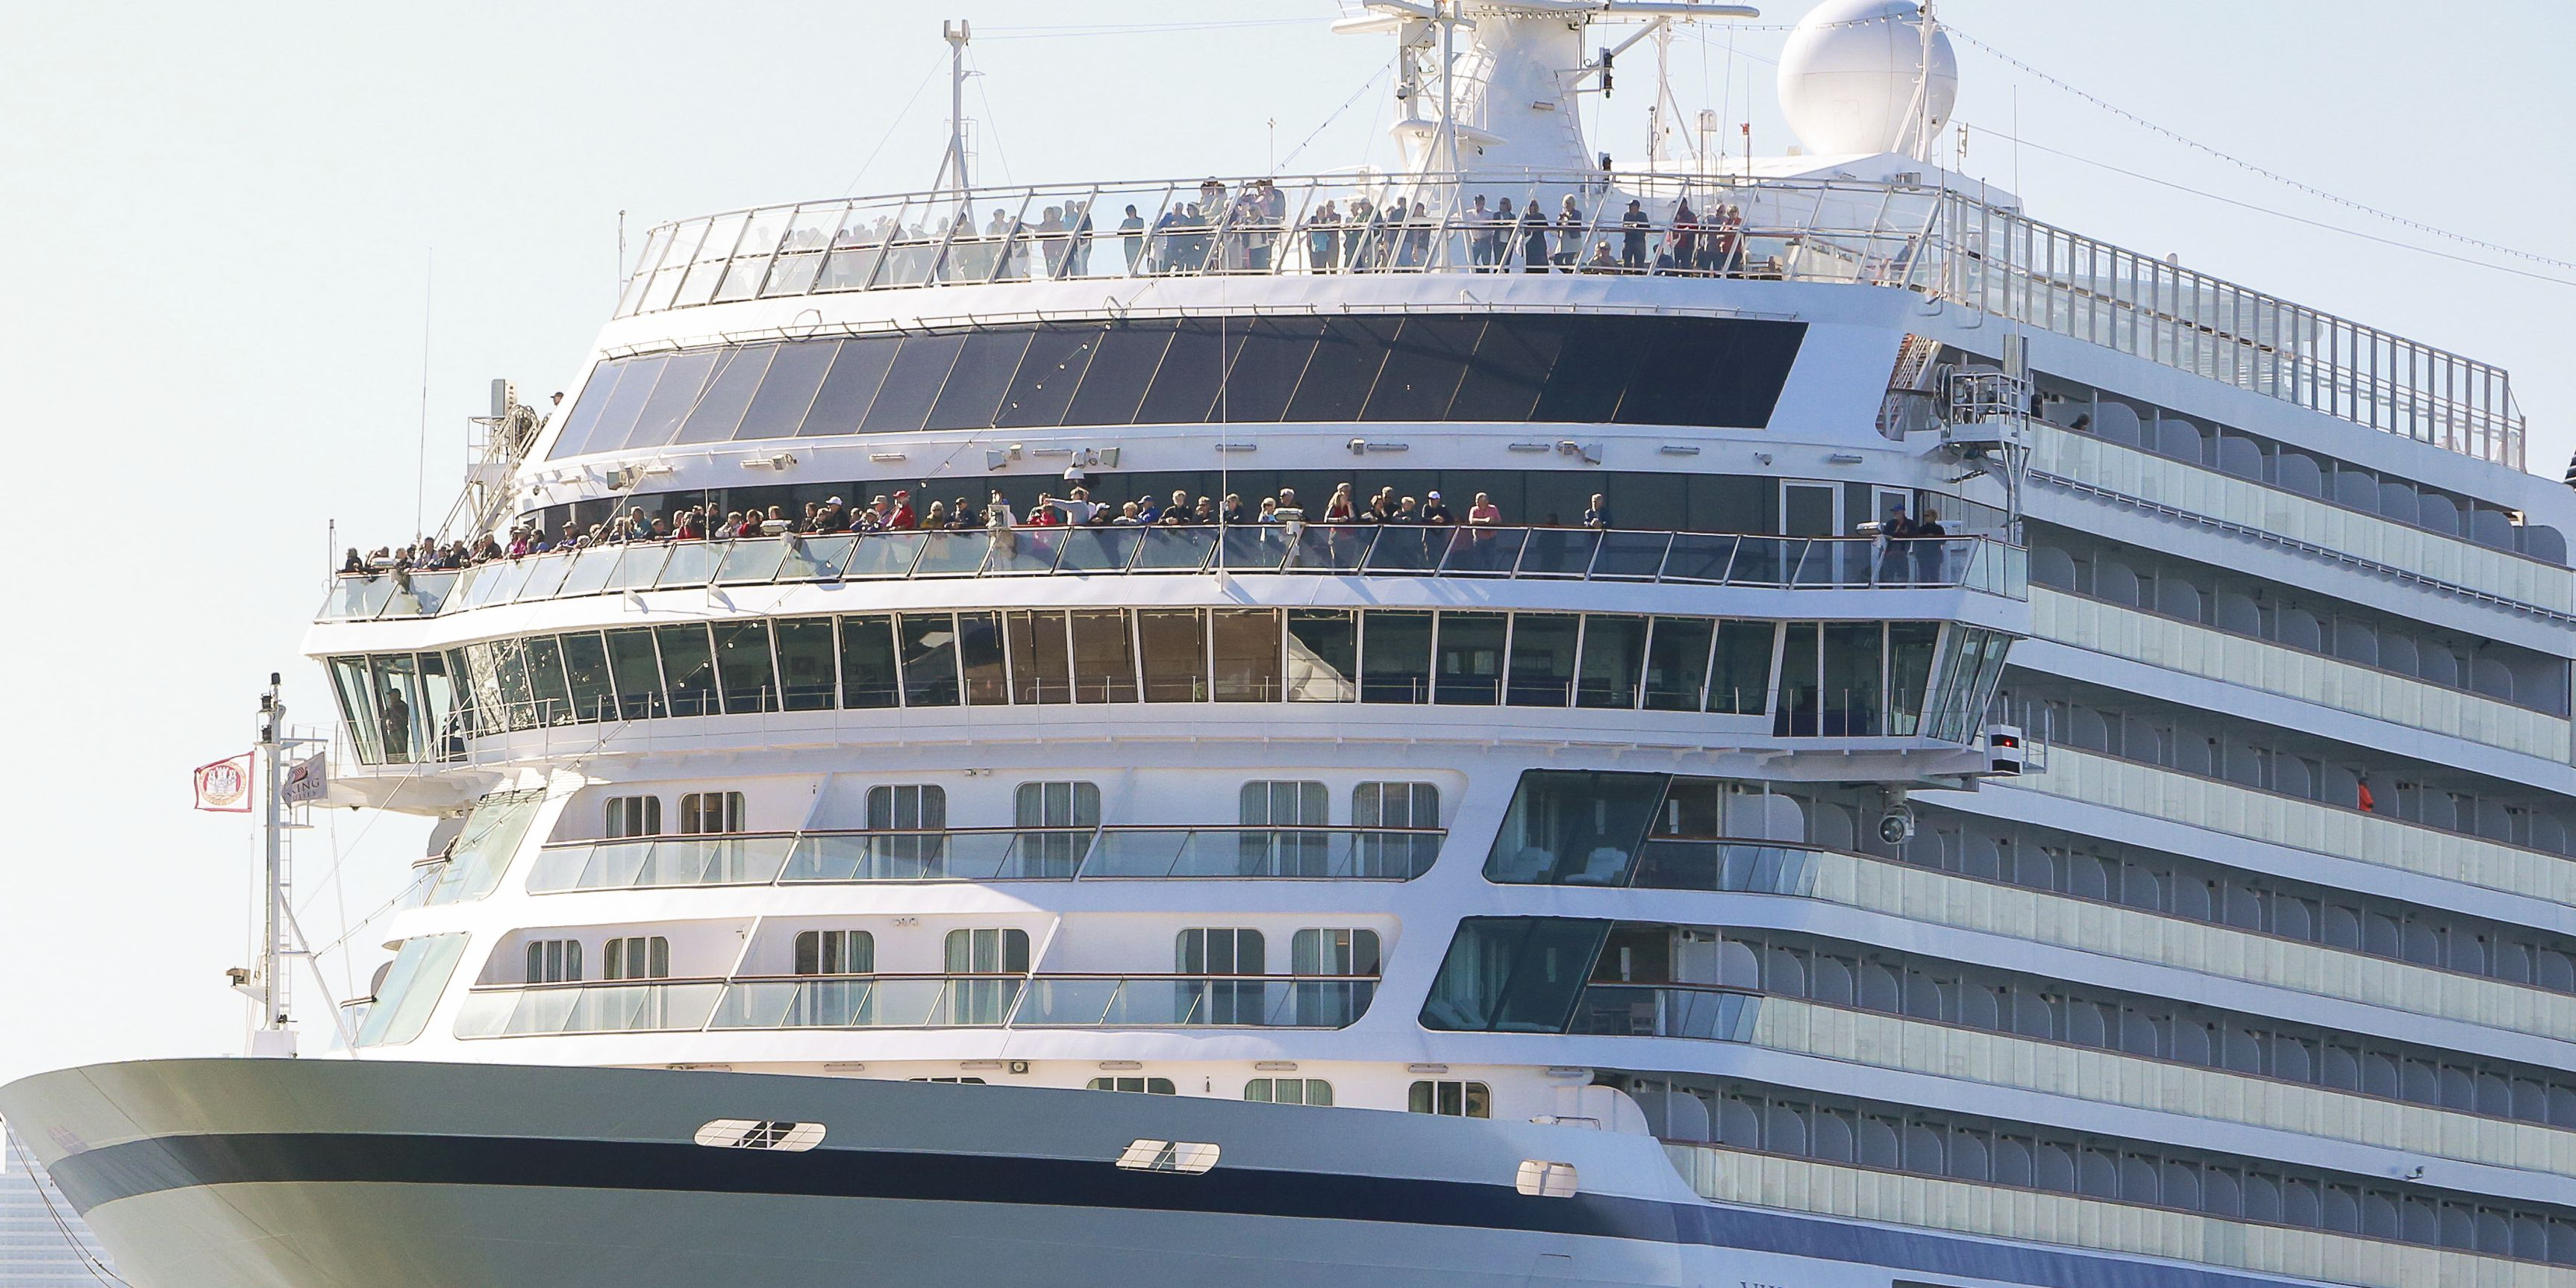 Cruise ship off Norway issues mayday; passengers to evacuate